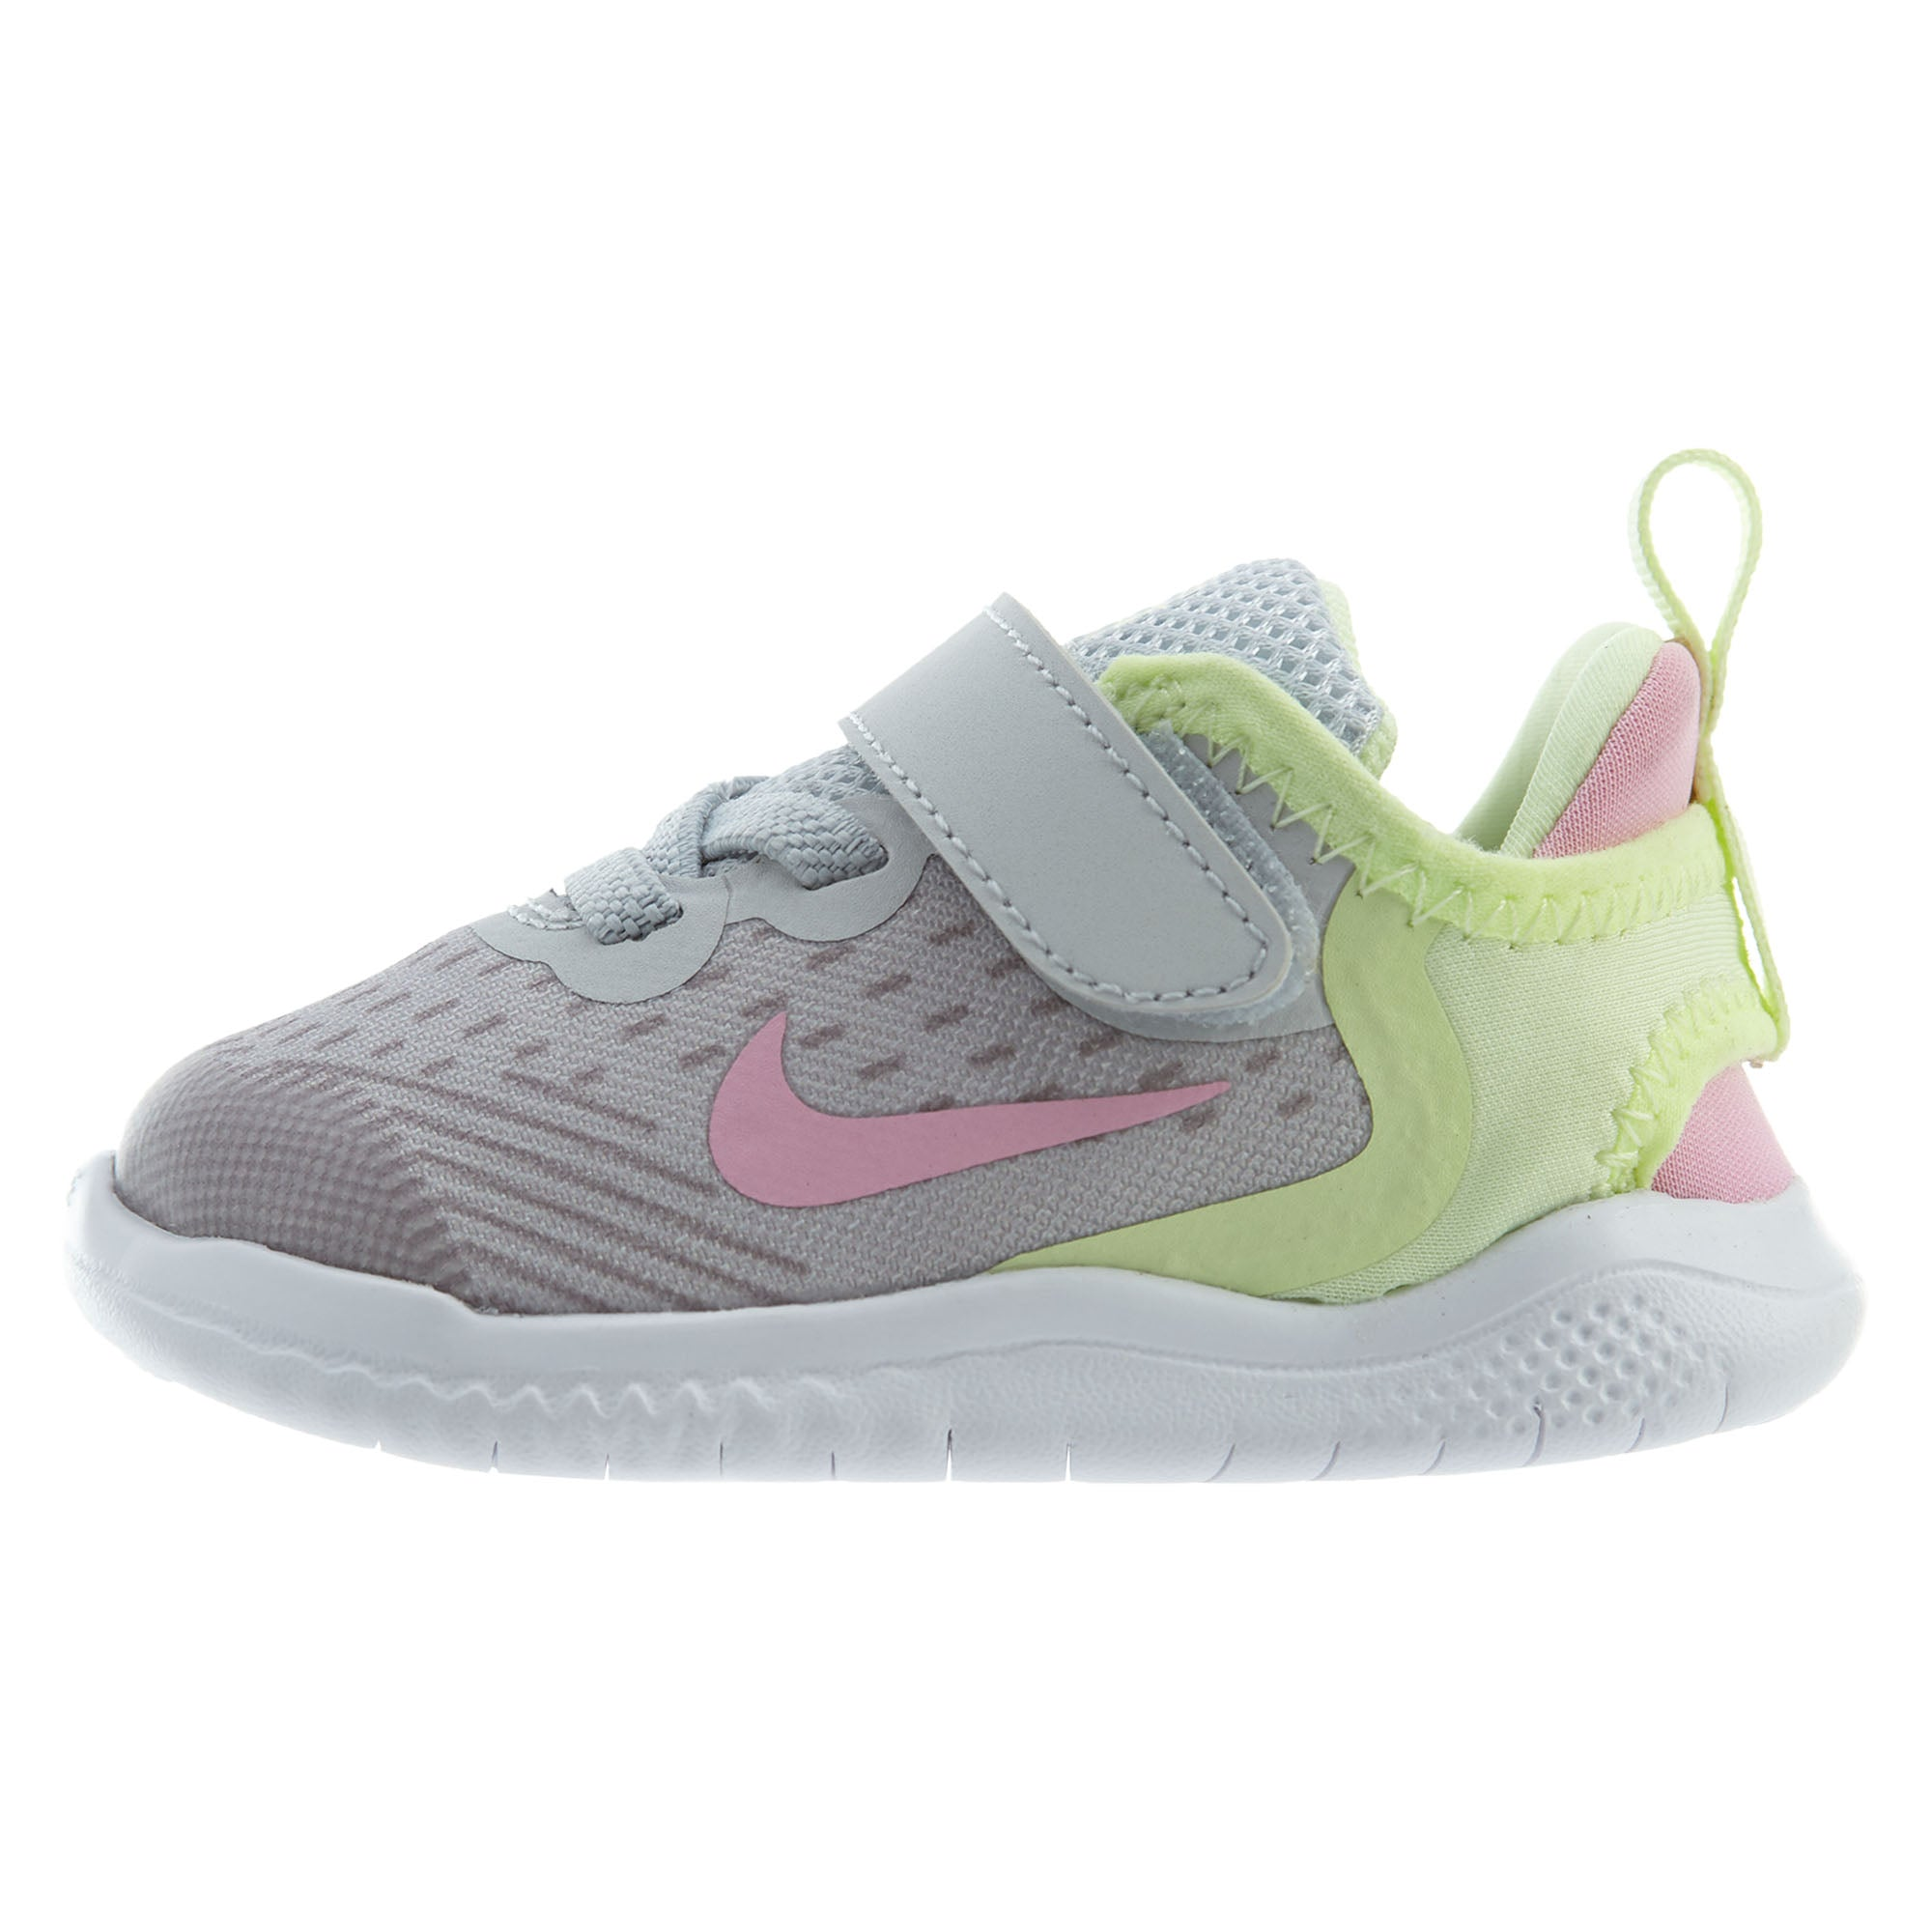 93a8476939b97 Nike Free Rn 2018 Toddlers Style   Ah3456-002 – talkmoney730